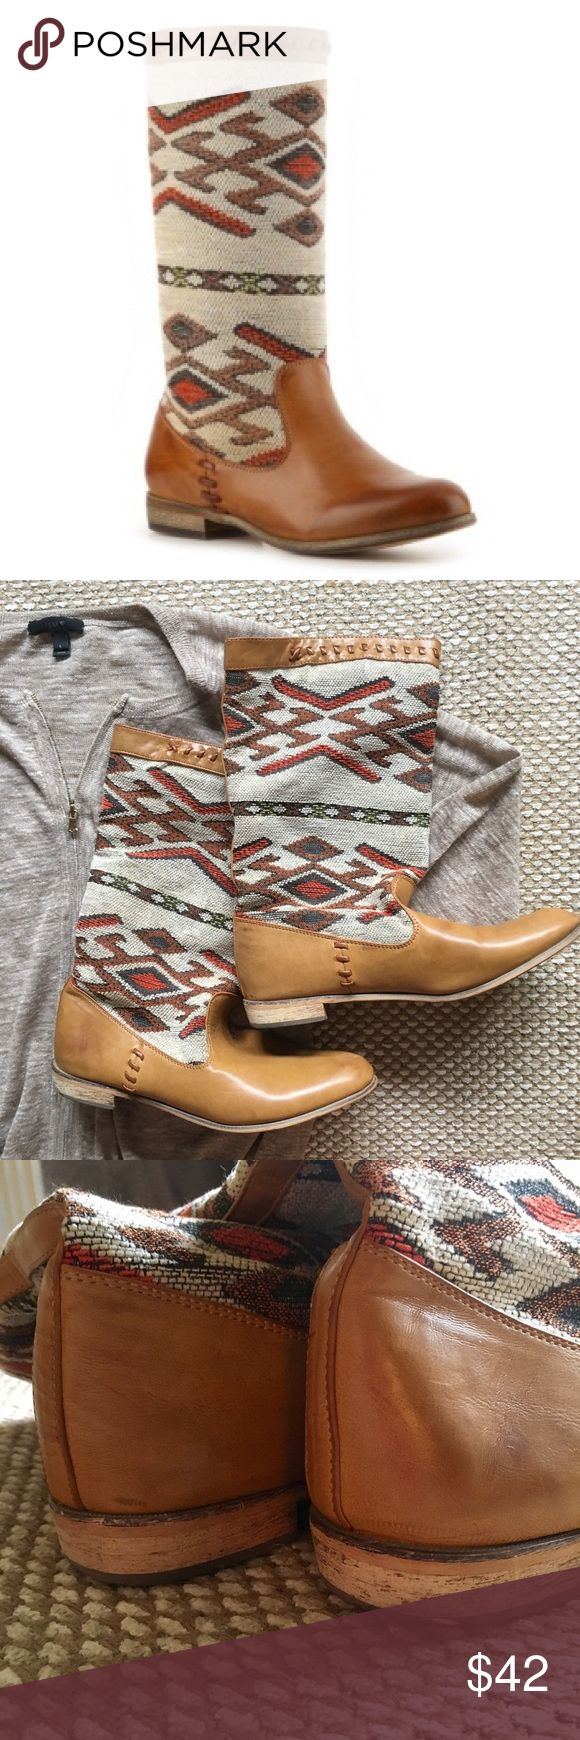 """Leather & Textile Aztec Boot Women's Wanted, sz11 Too cute Women's Wanted Leather and Textile Aztec boots! Woven prints and stitching details give this boot a rustic, vintage feel that is sure to have all eyes on you. Size 11. Worn 1-2 times, EXCELLENT condition! Minor scuffing on toes. Small spot on heel. (See pics) As seen in Vogue Ganado-inspired print fabric and faux leather upper Burnished stitching accents 9"""" shaft height, pull on 13"""" calf circumference ¾"""" block heel Synthetic sole…"""